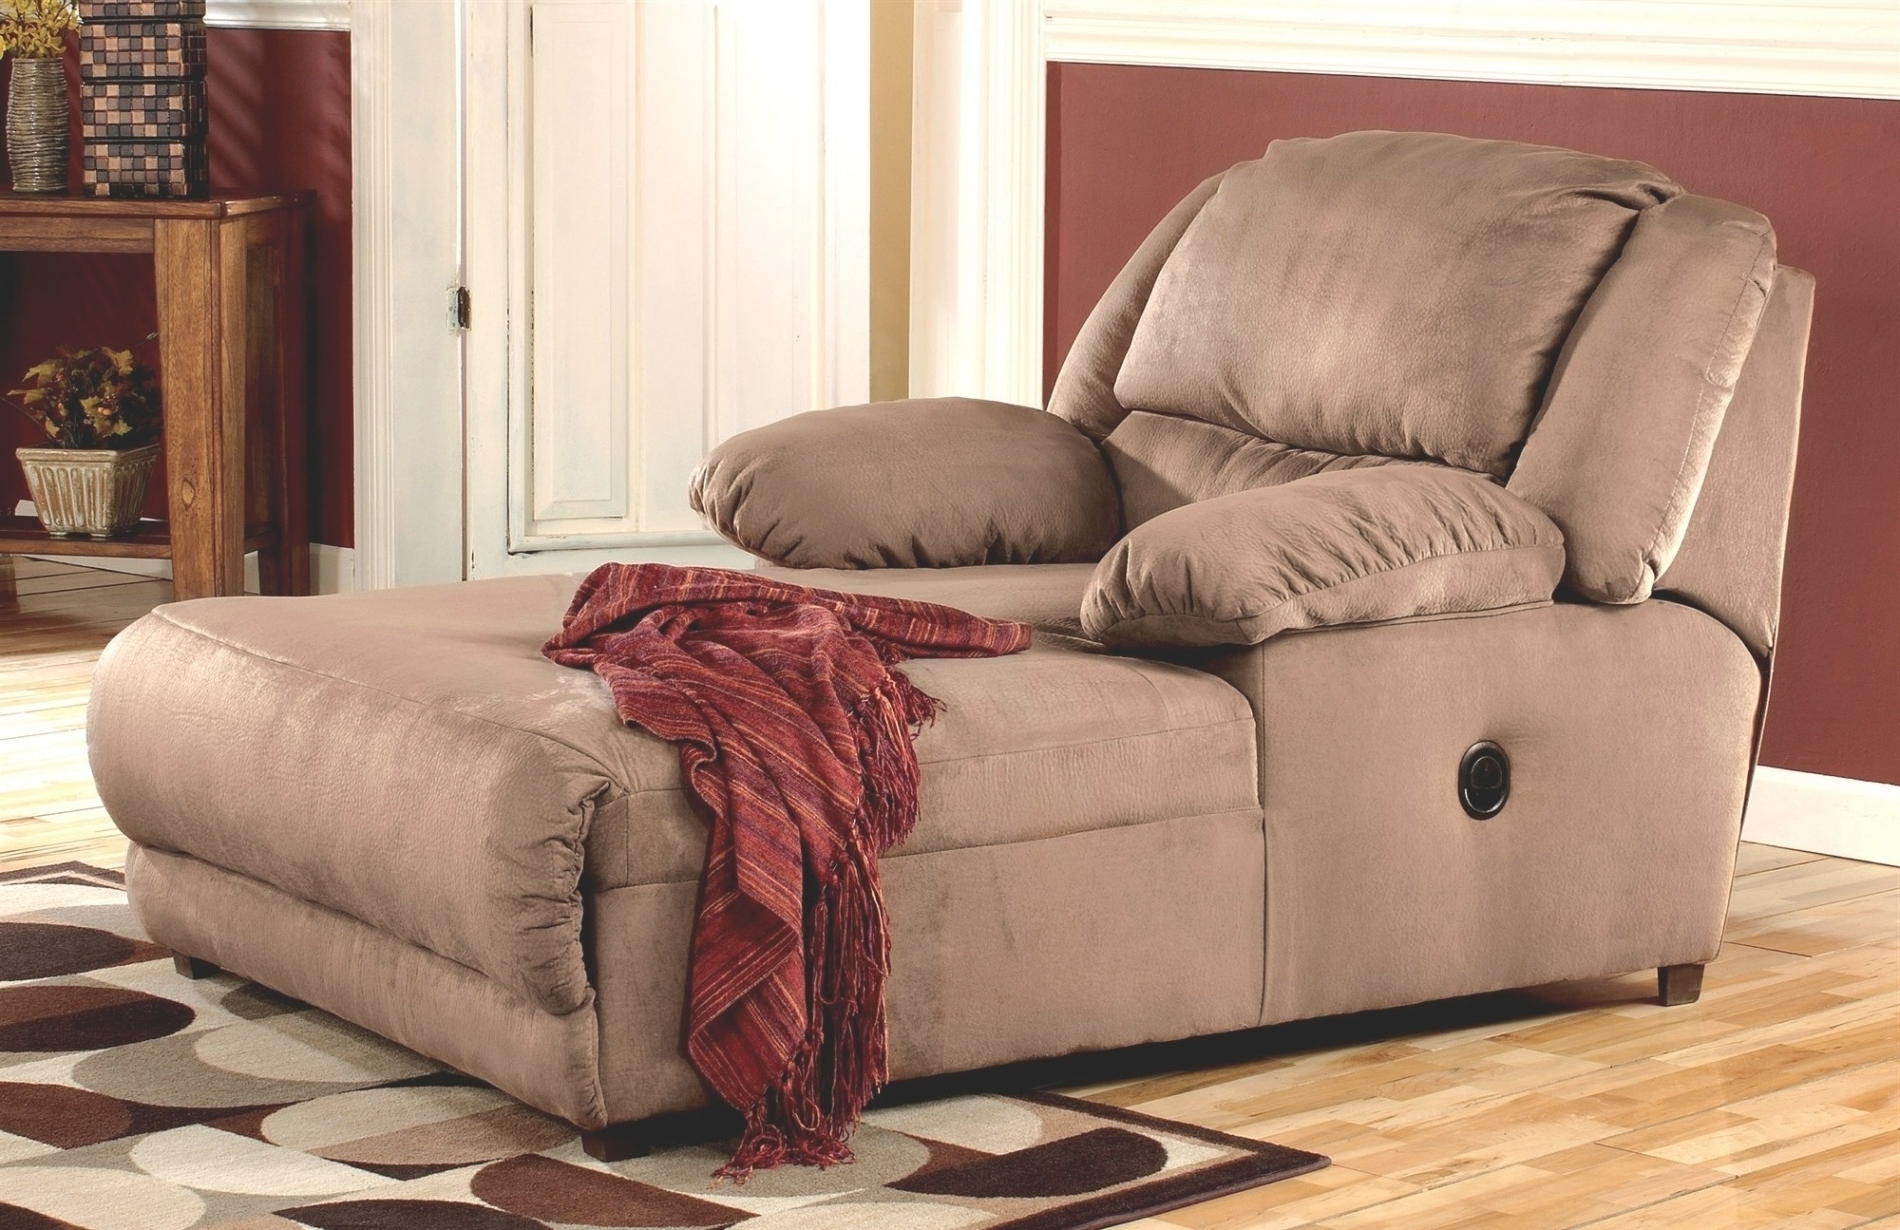 Best And Newest Oversized Chaise Lounge Indoor Ideas — Cdbossington Interior Design For Oversized Chaise Lounges (View 5 of 15)